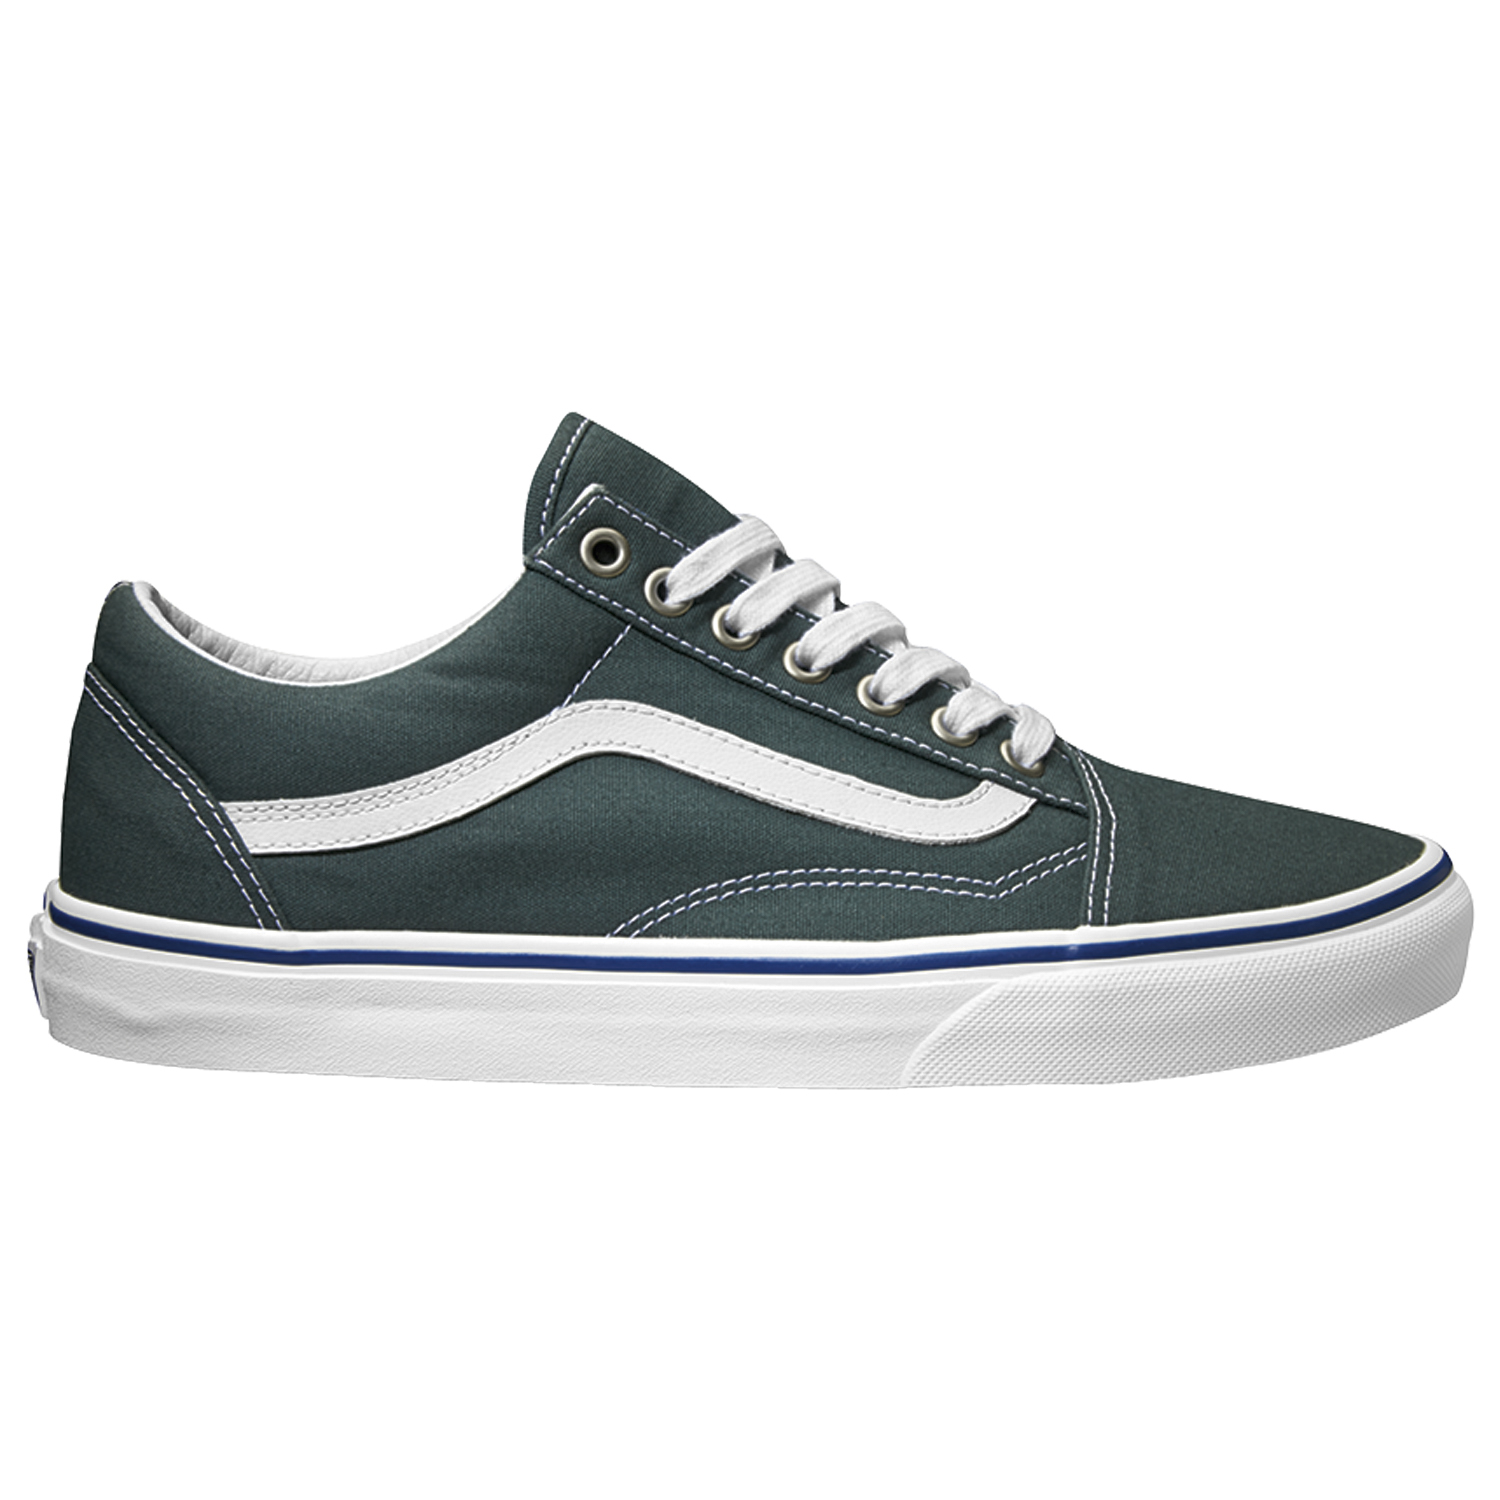 vans-old-skool-green-gables-true-white-129-90